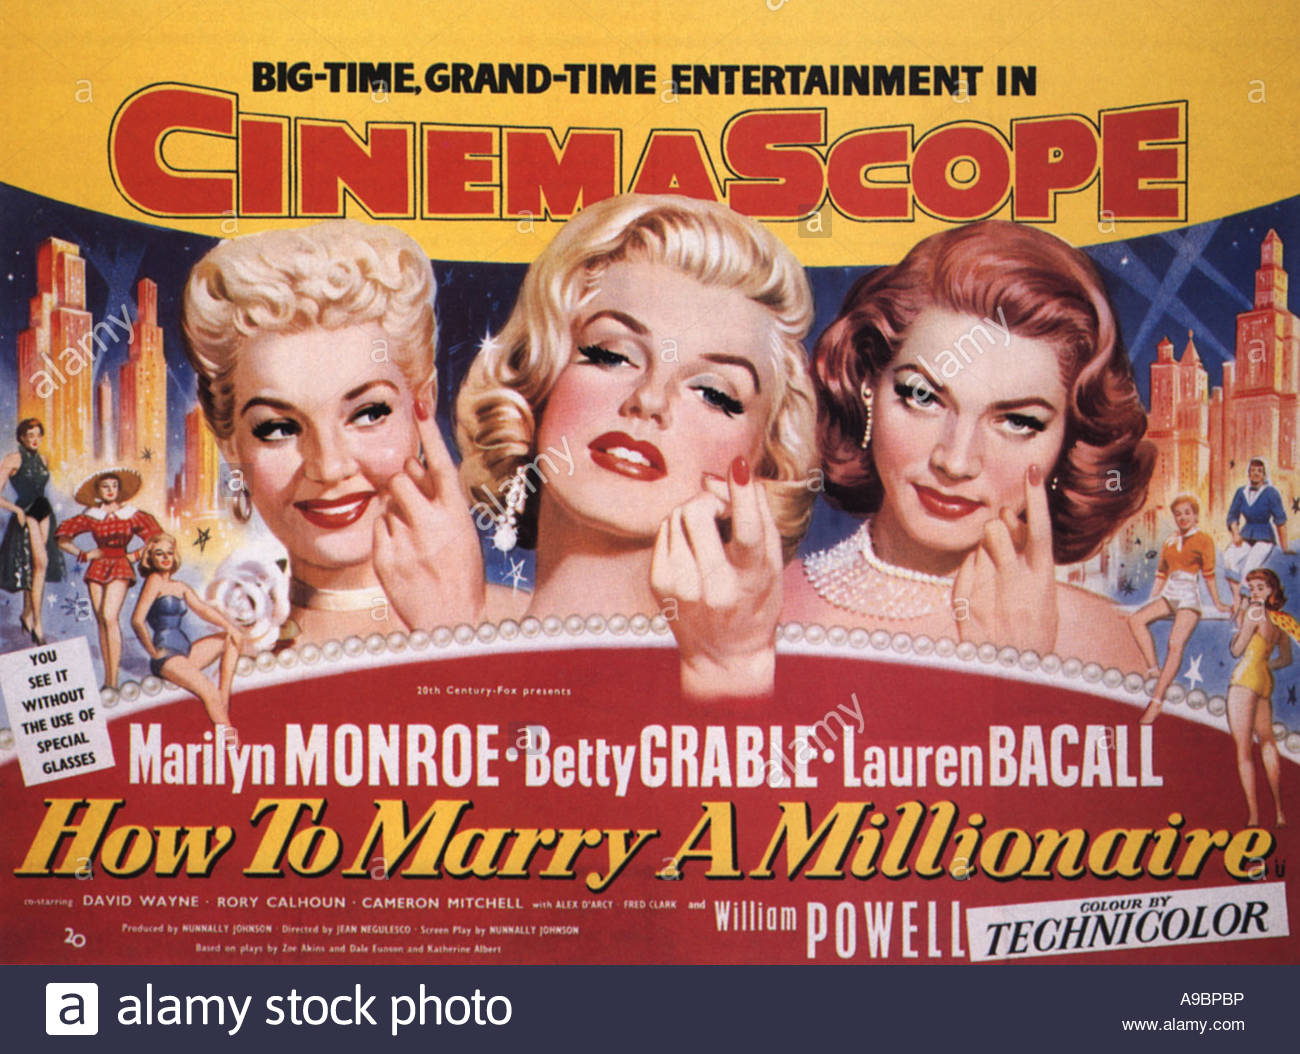 How to marry a millionaire filmposter